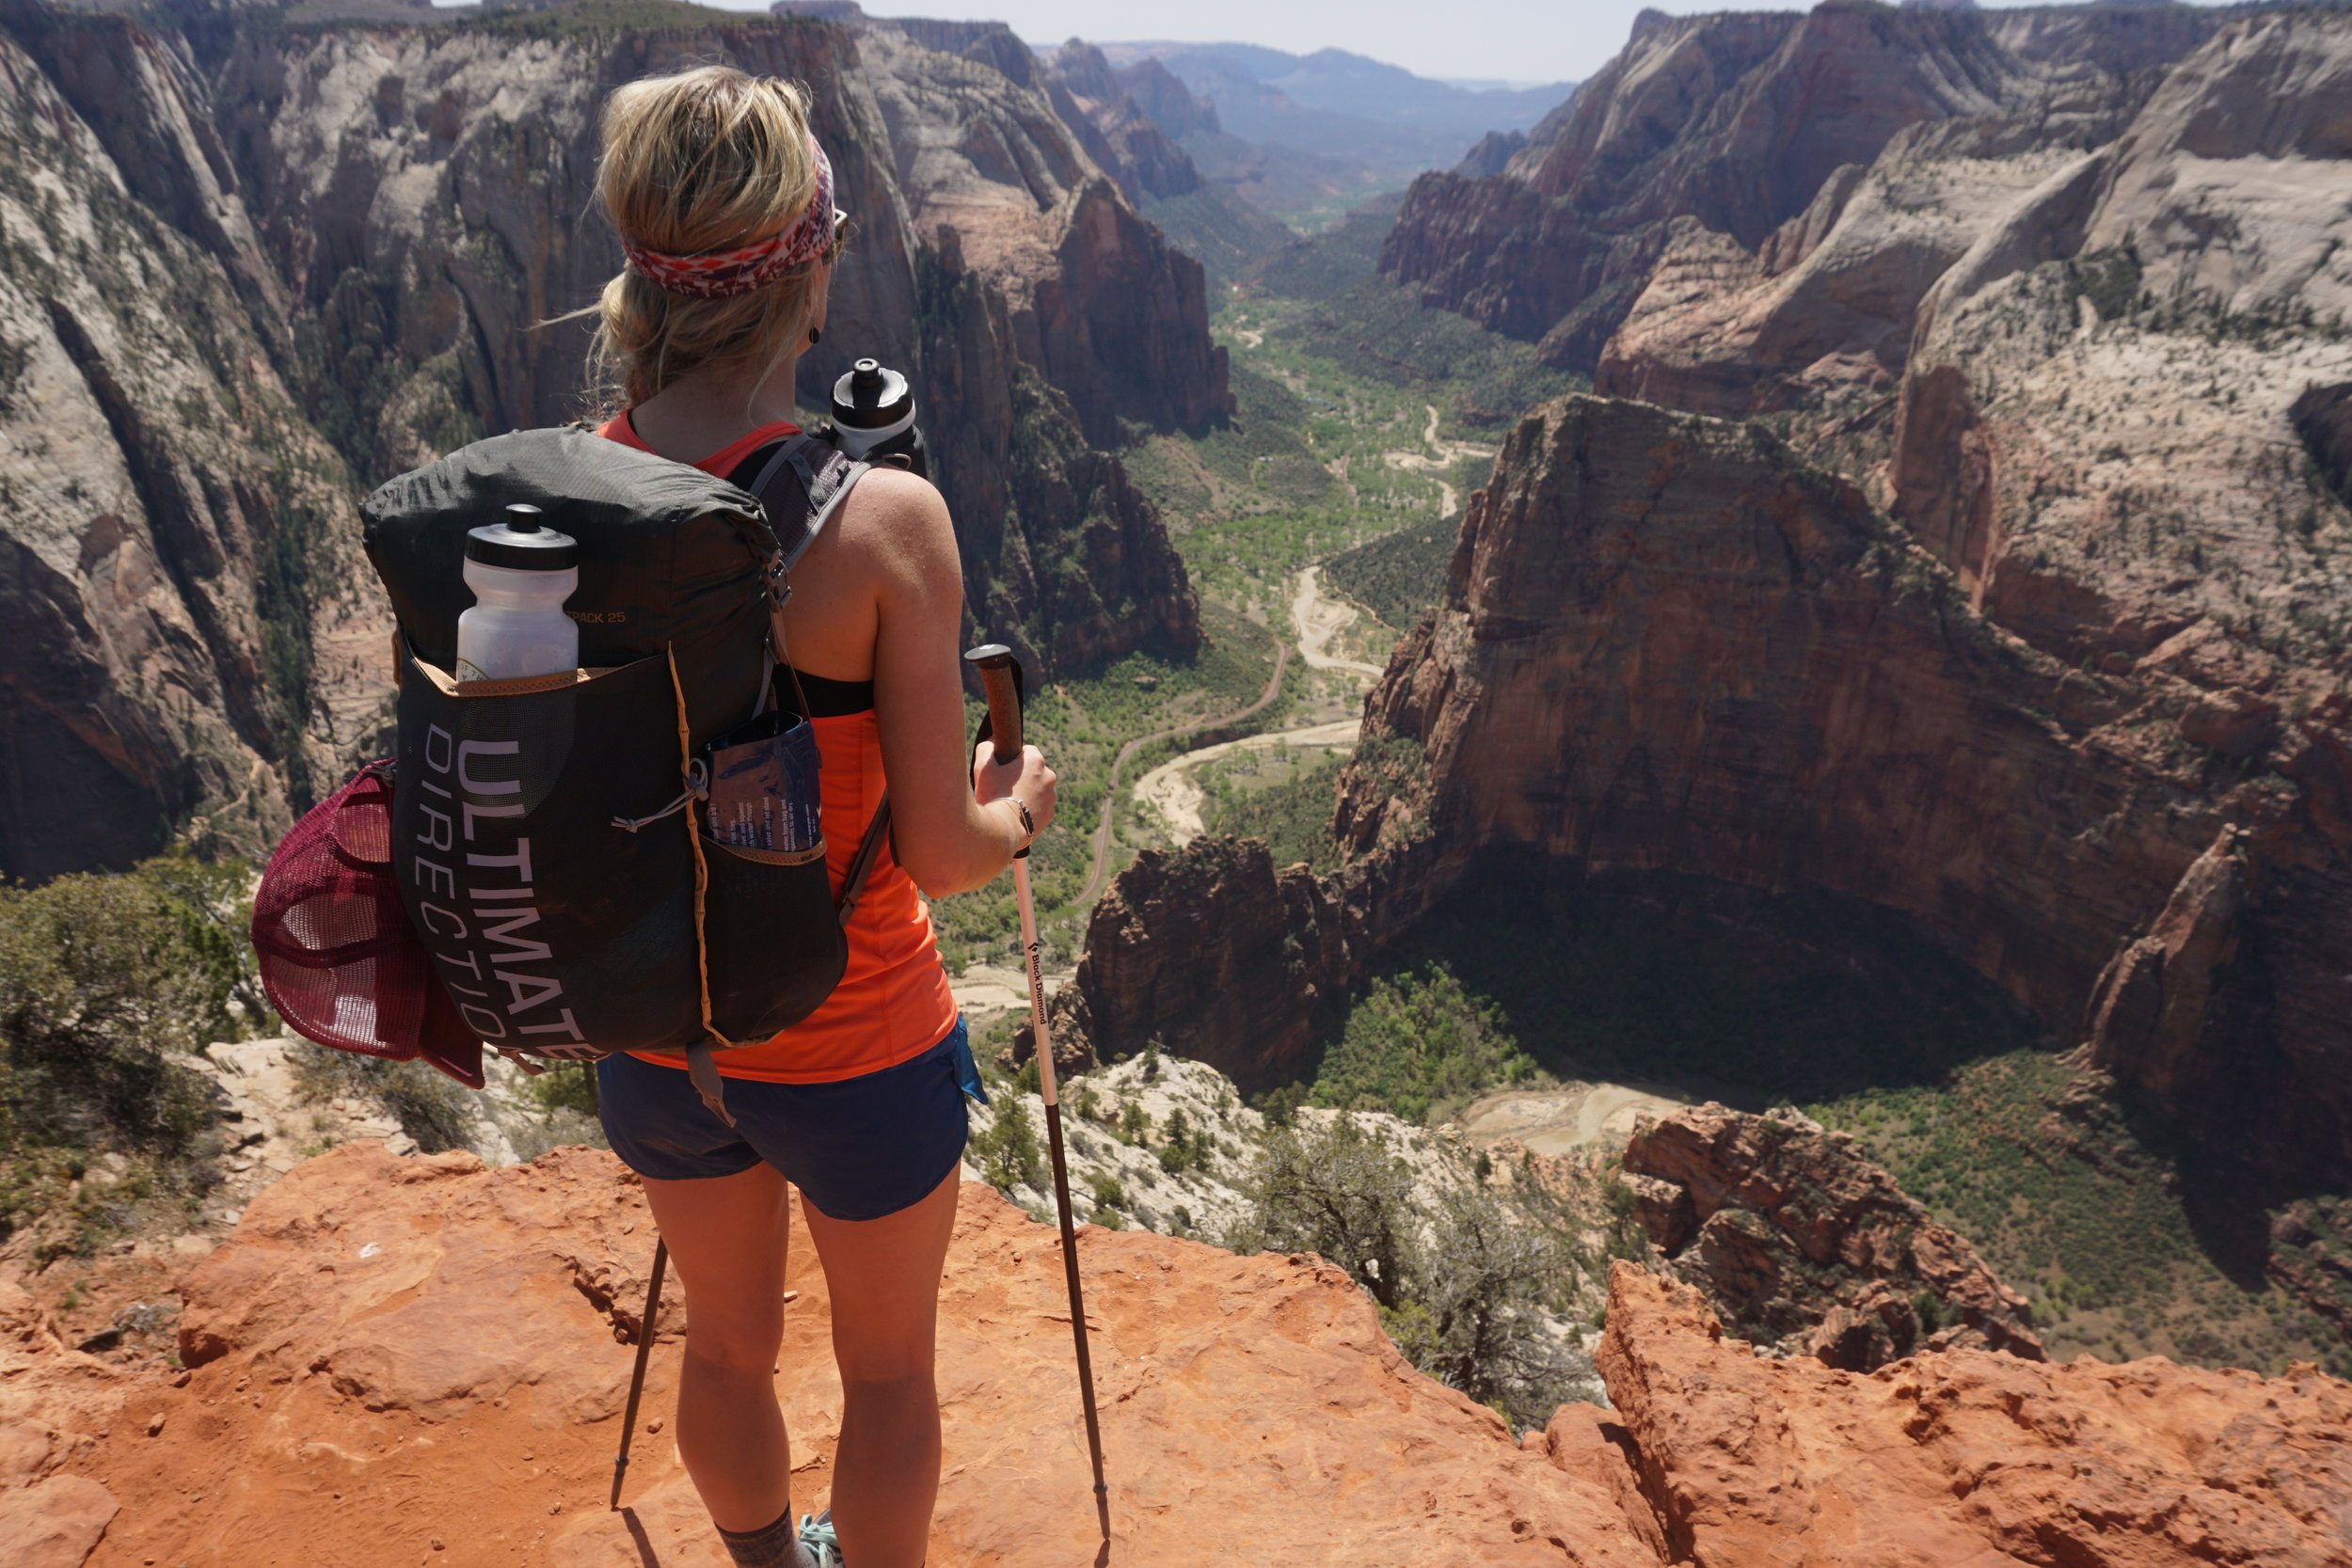 Fastpacking through Zion National Park, UT